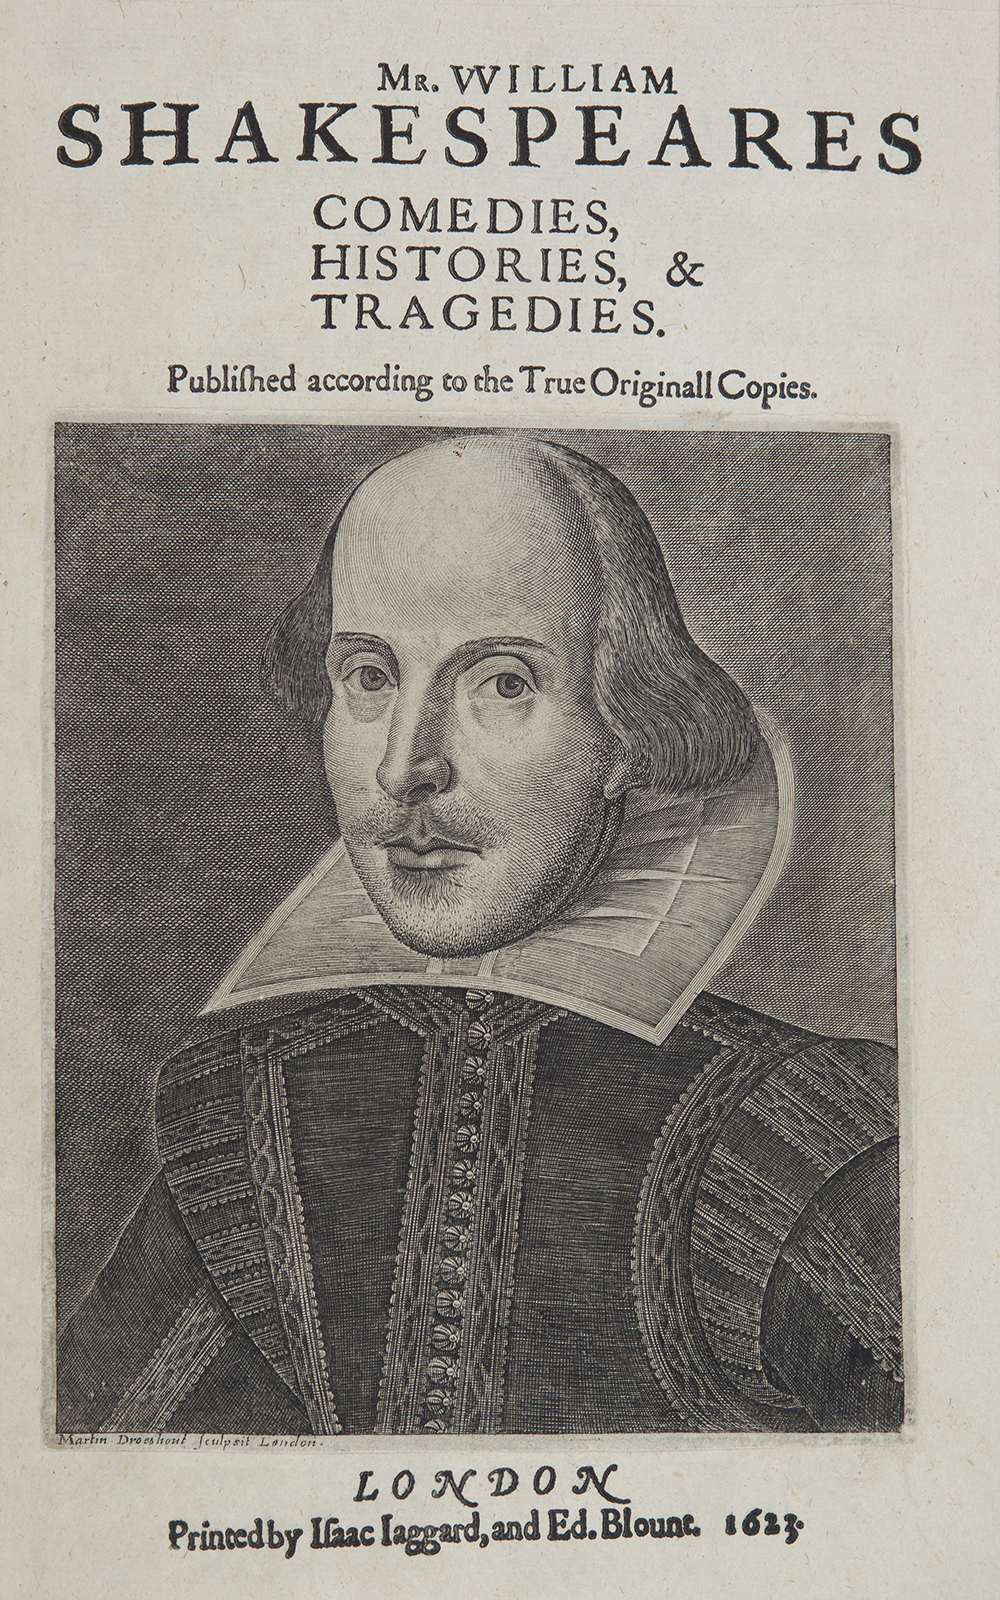 A portrait of William Shakespeare engraved by Martin Droeshout as the frontispiece for the title page of the First Folio